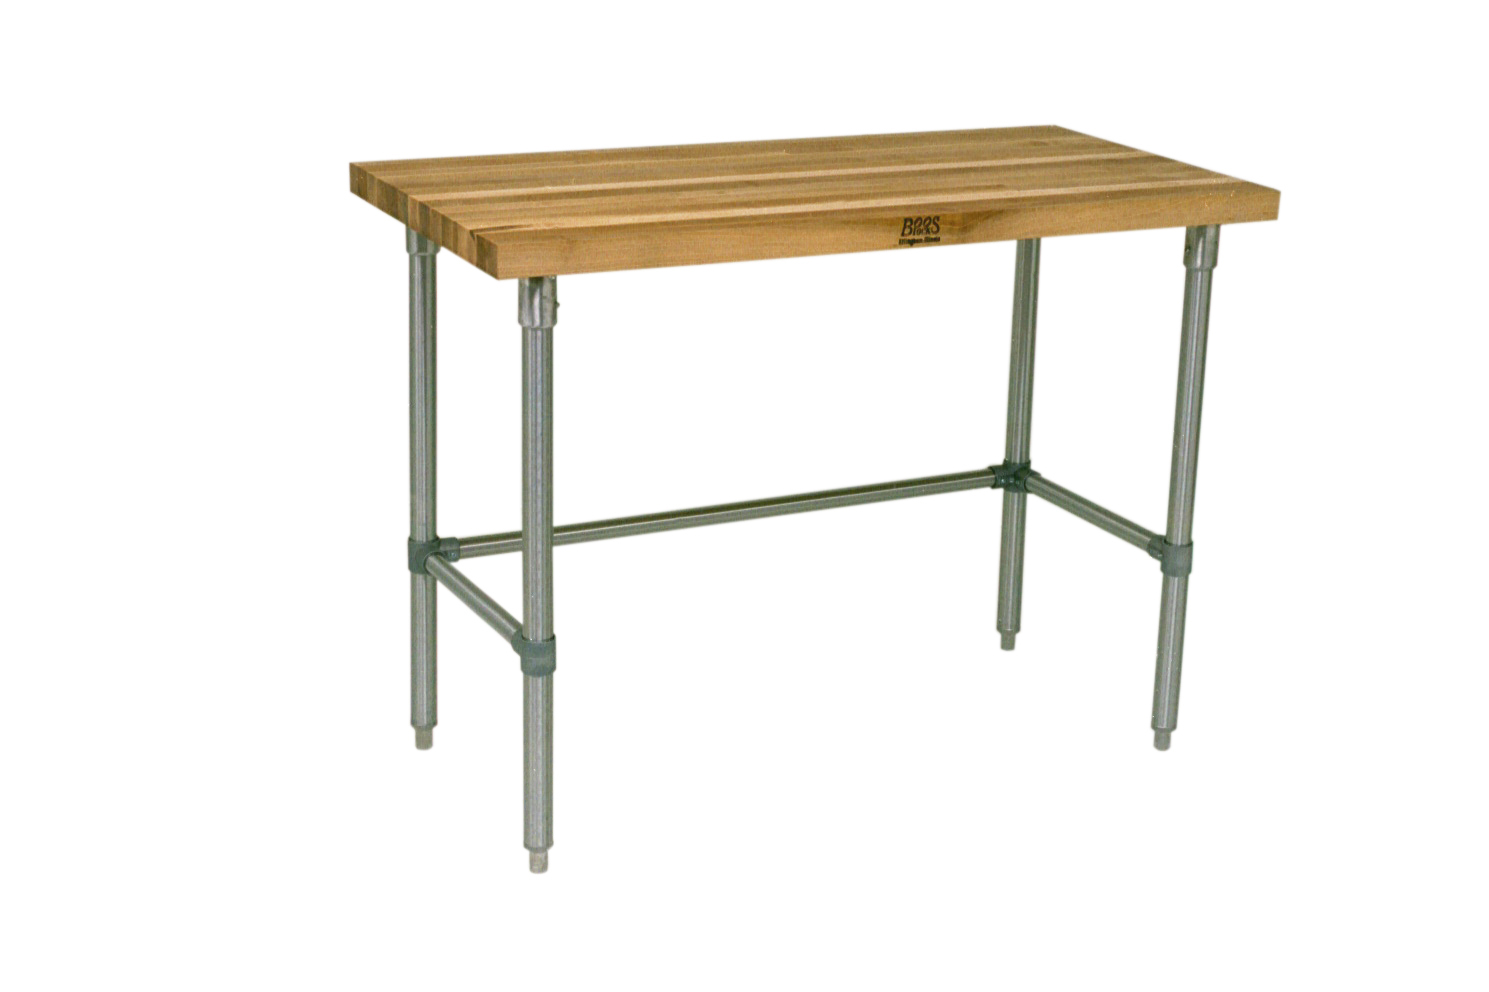 John Boos Thick Maple Top Work Table on Adjustable Galvanized Base, 72 x 24 Inch